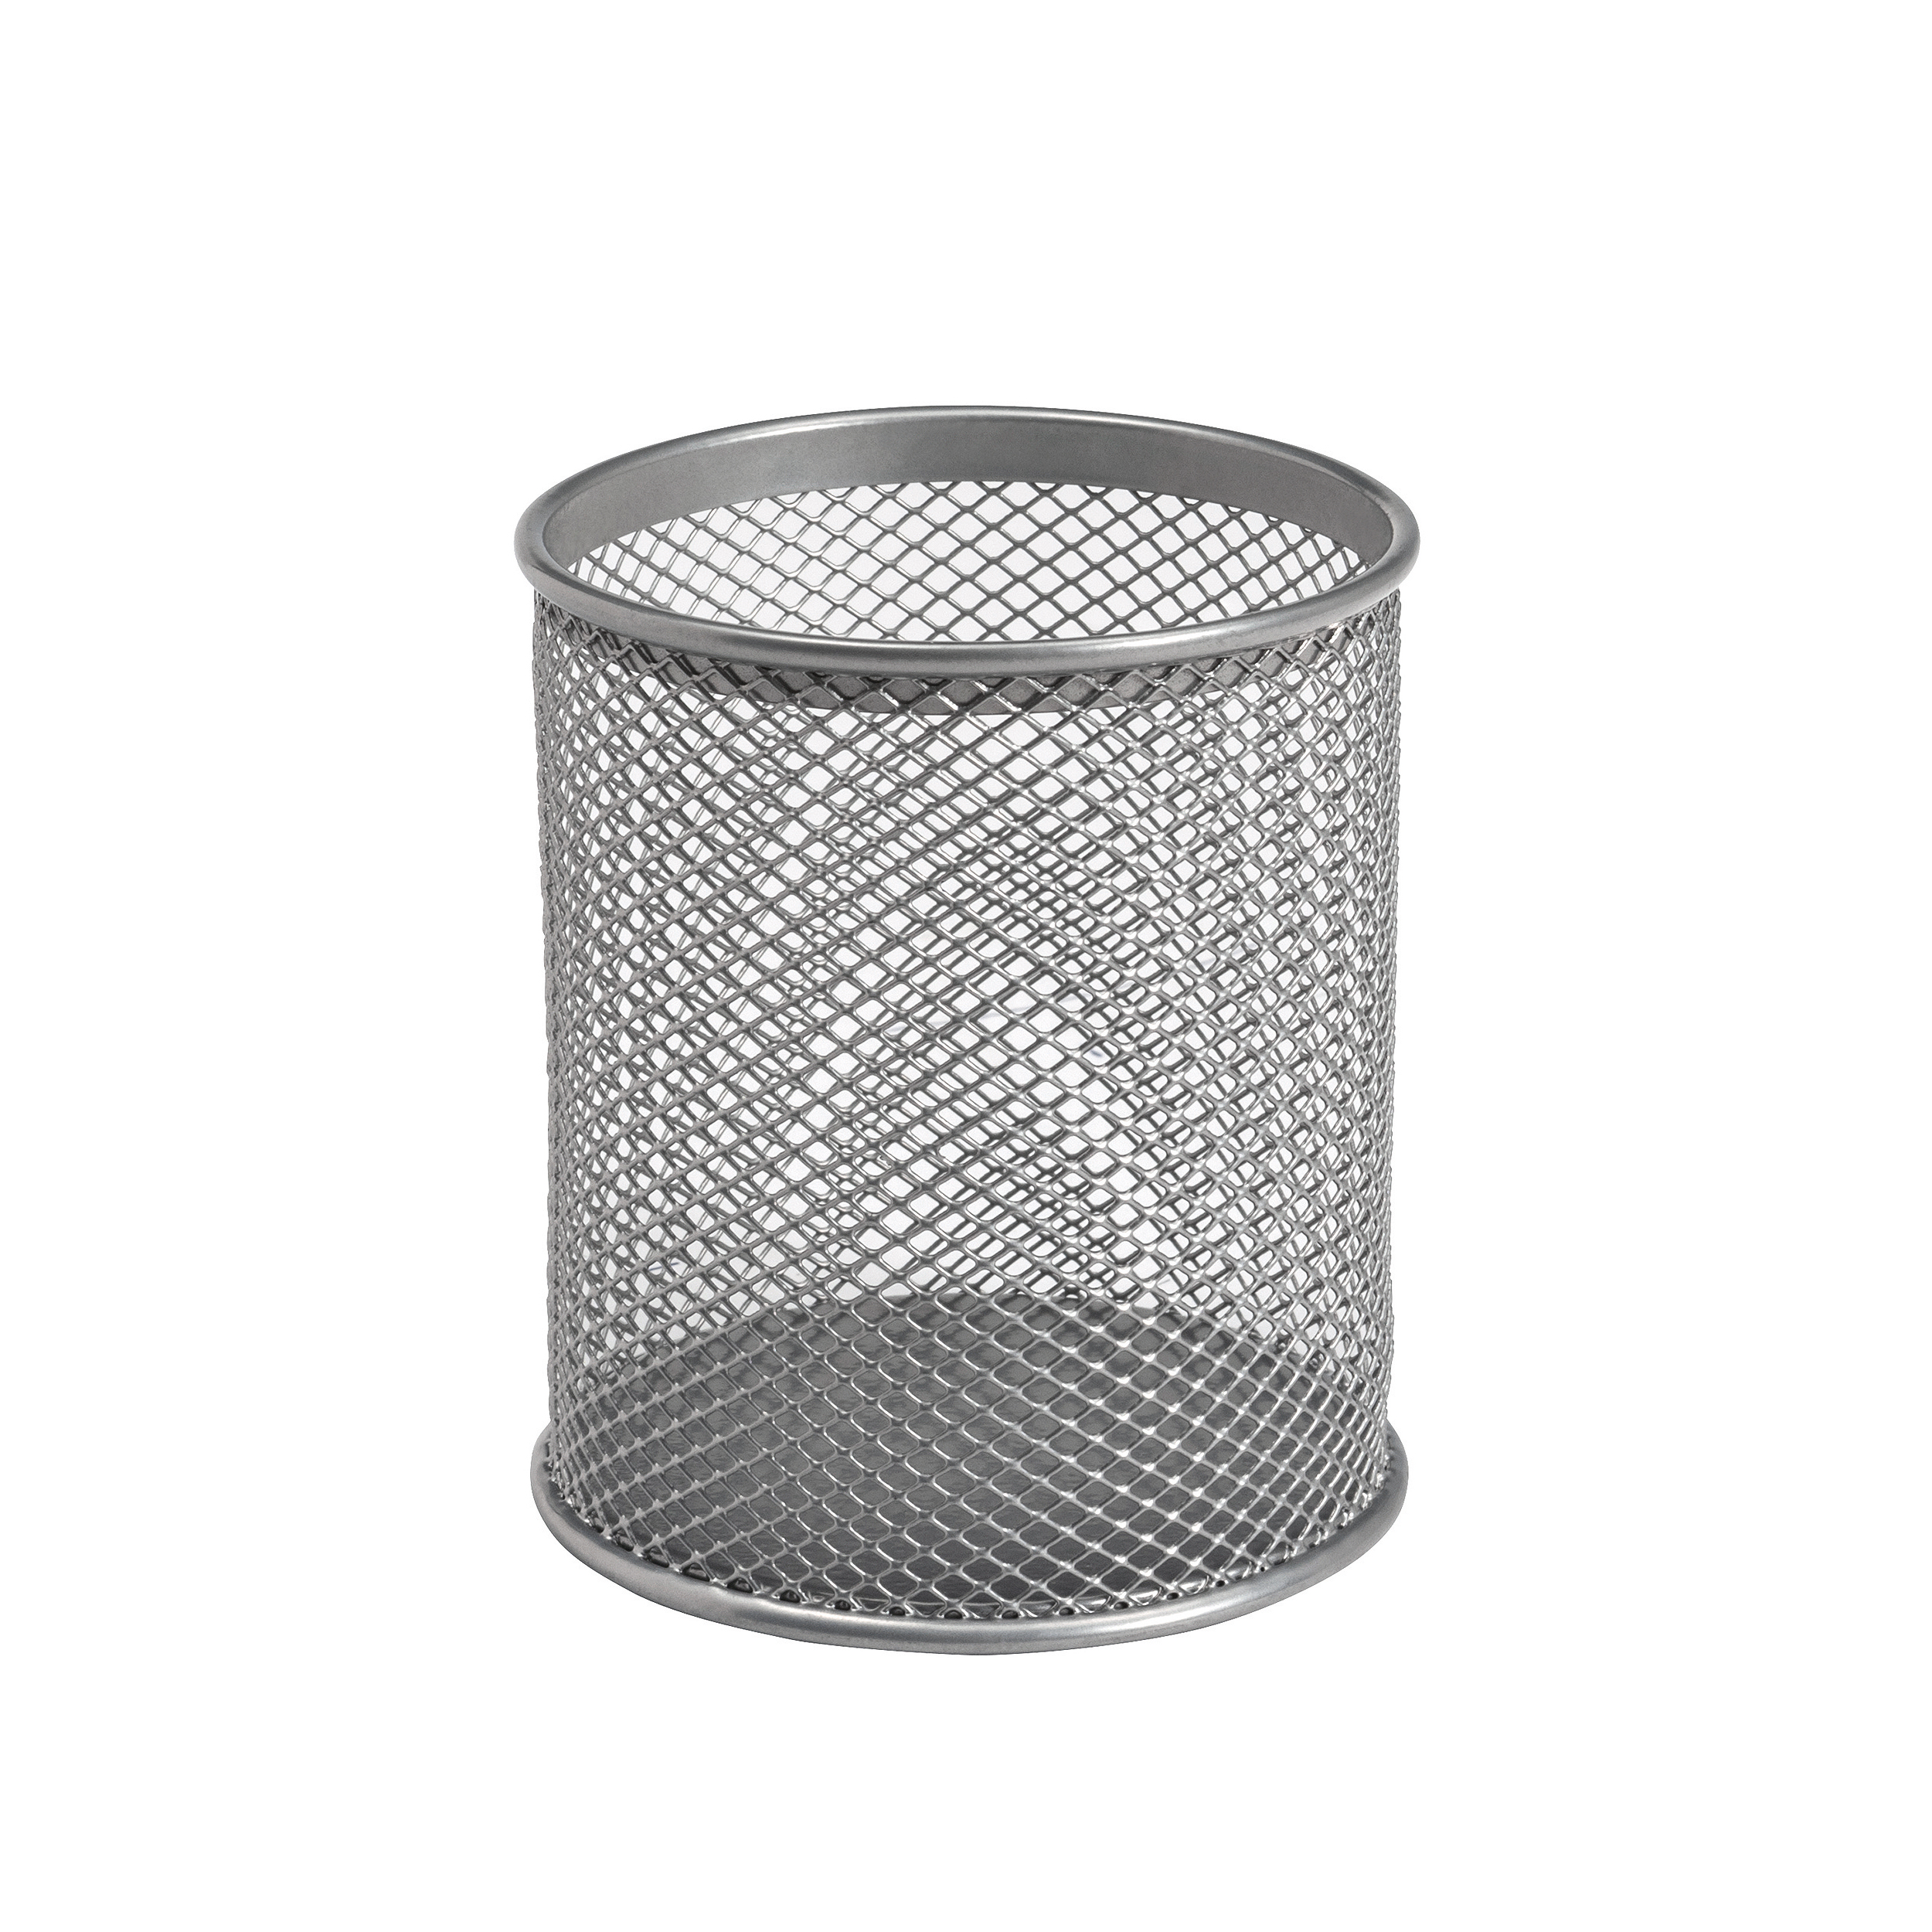 5 Star Office Pencil Holder Wire Mesh Silver